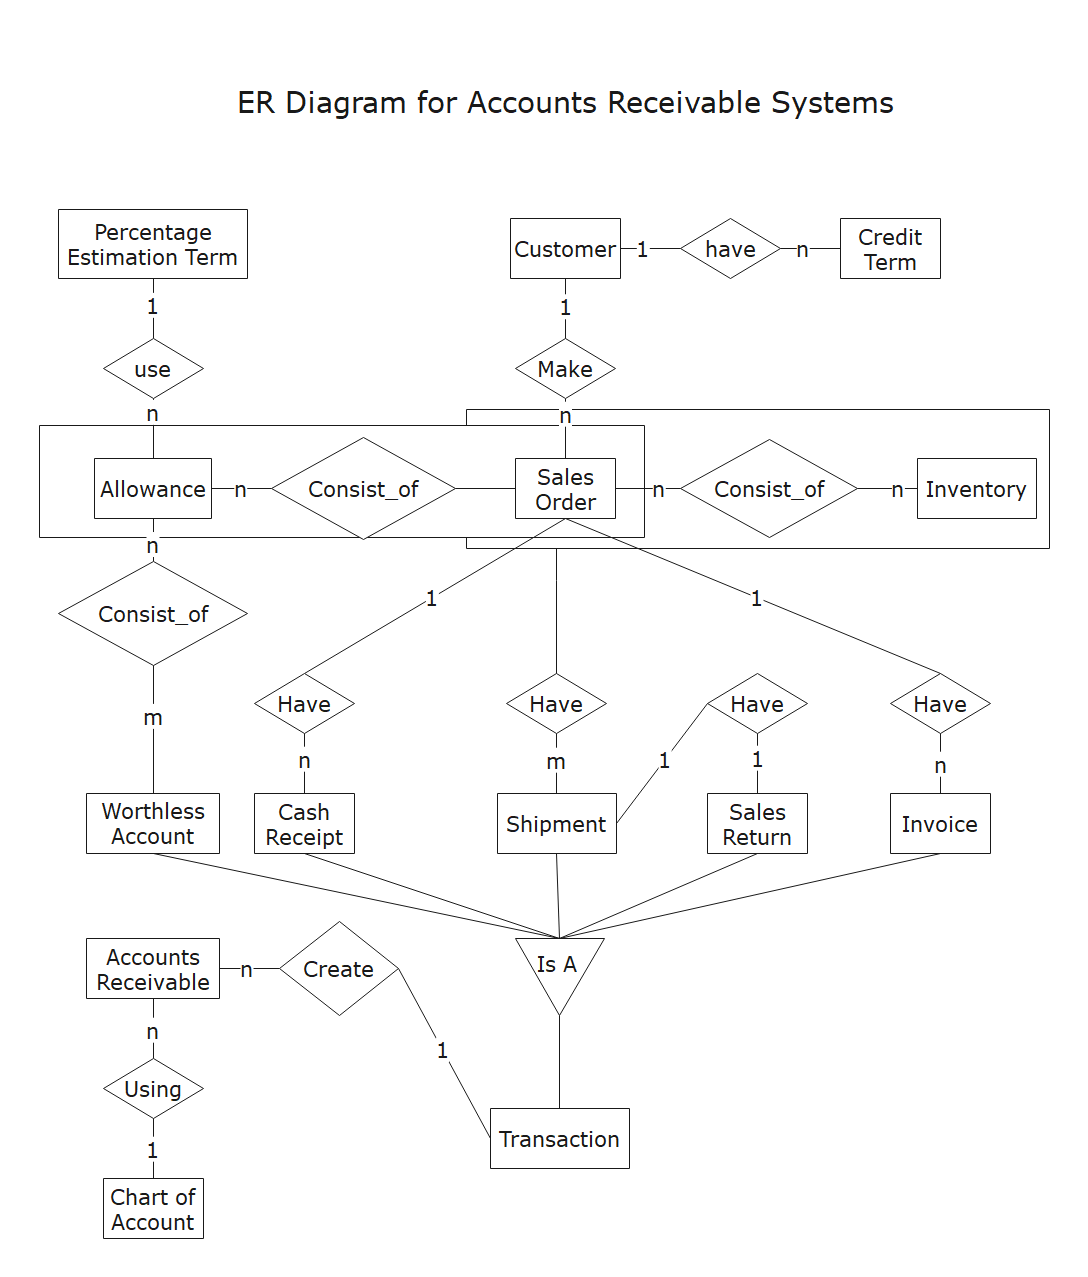 ER Diagram for Accounts Receivable Systems